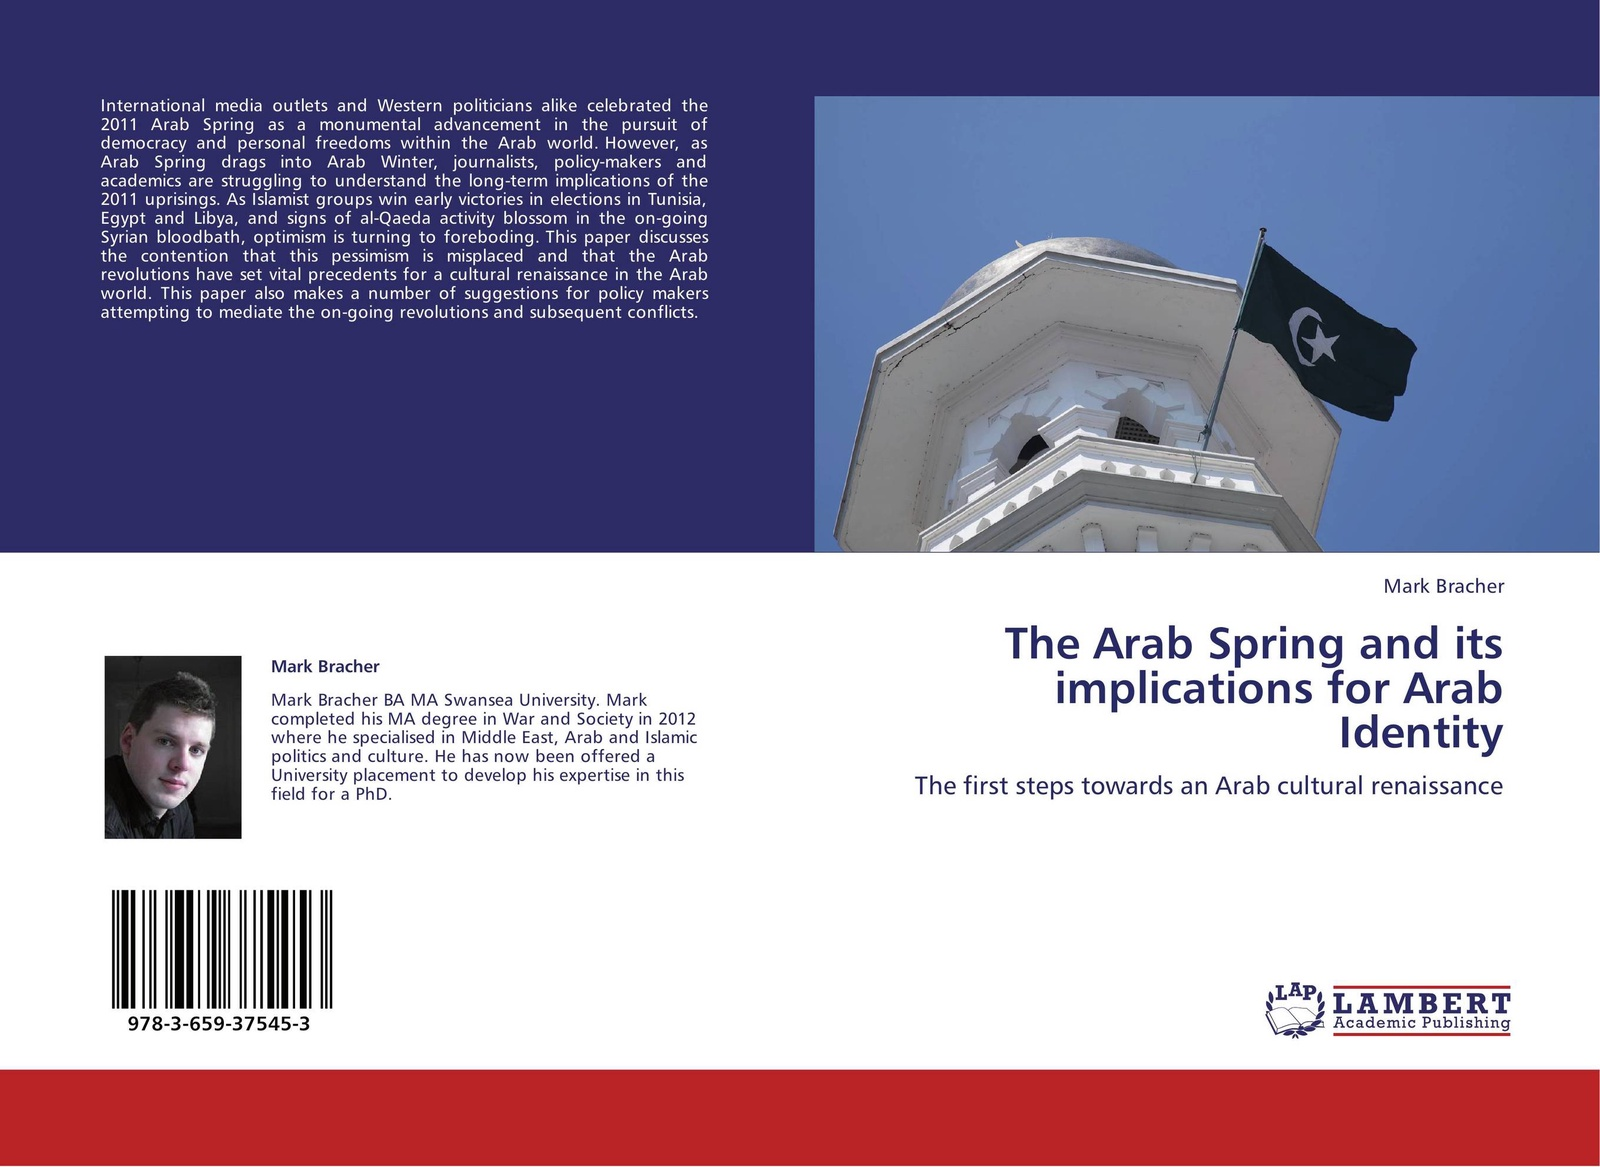 Mark Bracher The Arab Spring and its implications for Arab Identity